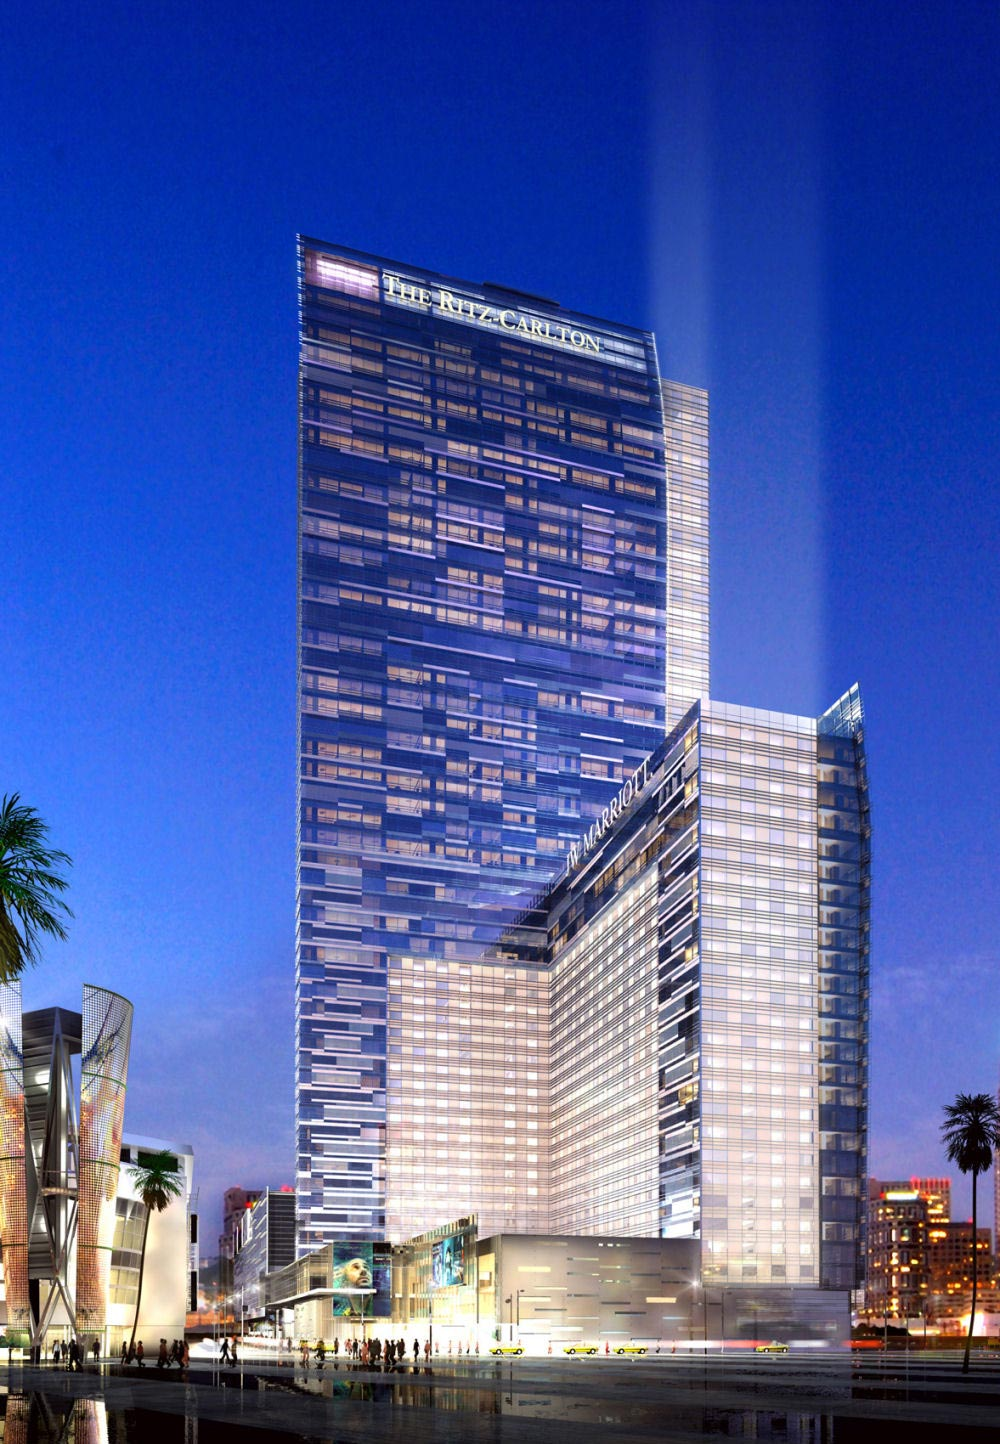 Ritz-Carlton-Los-Angeles-1